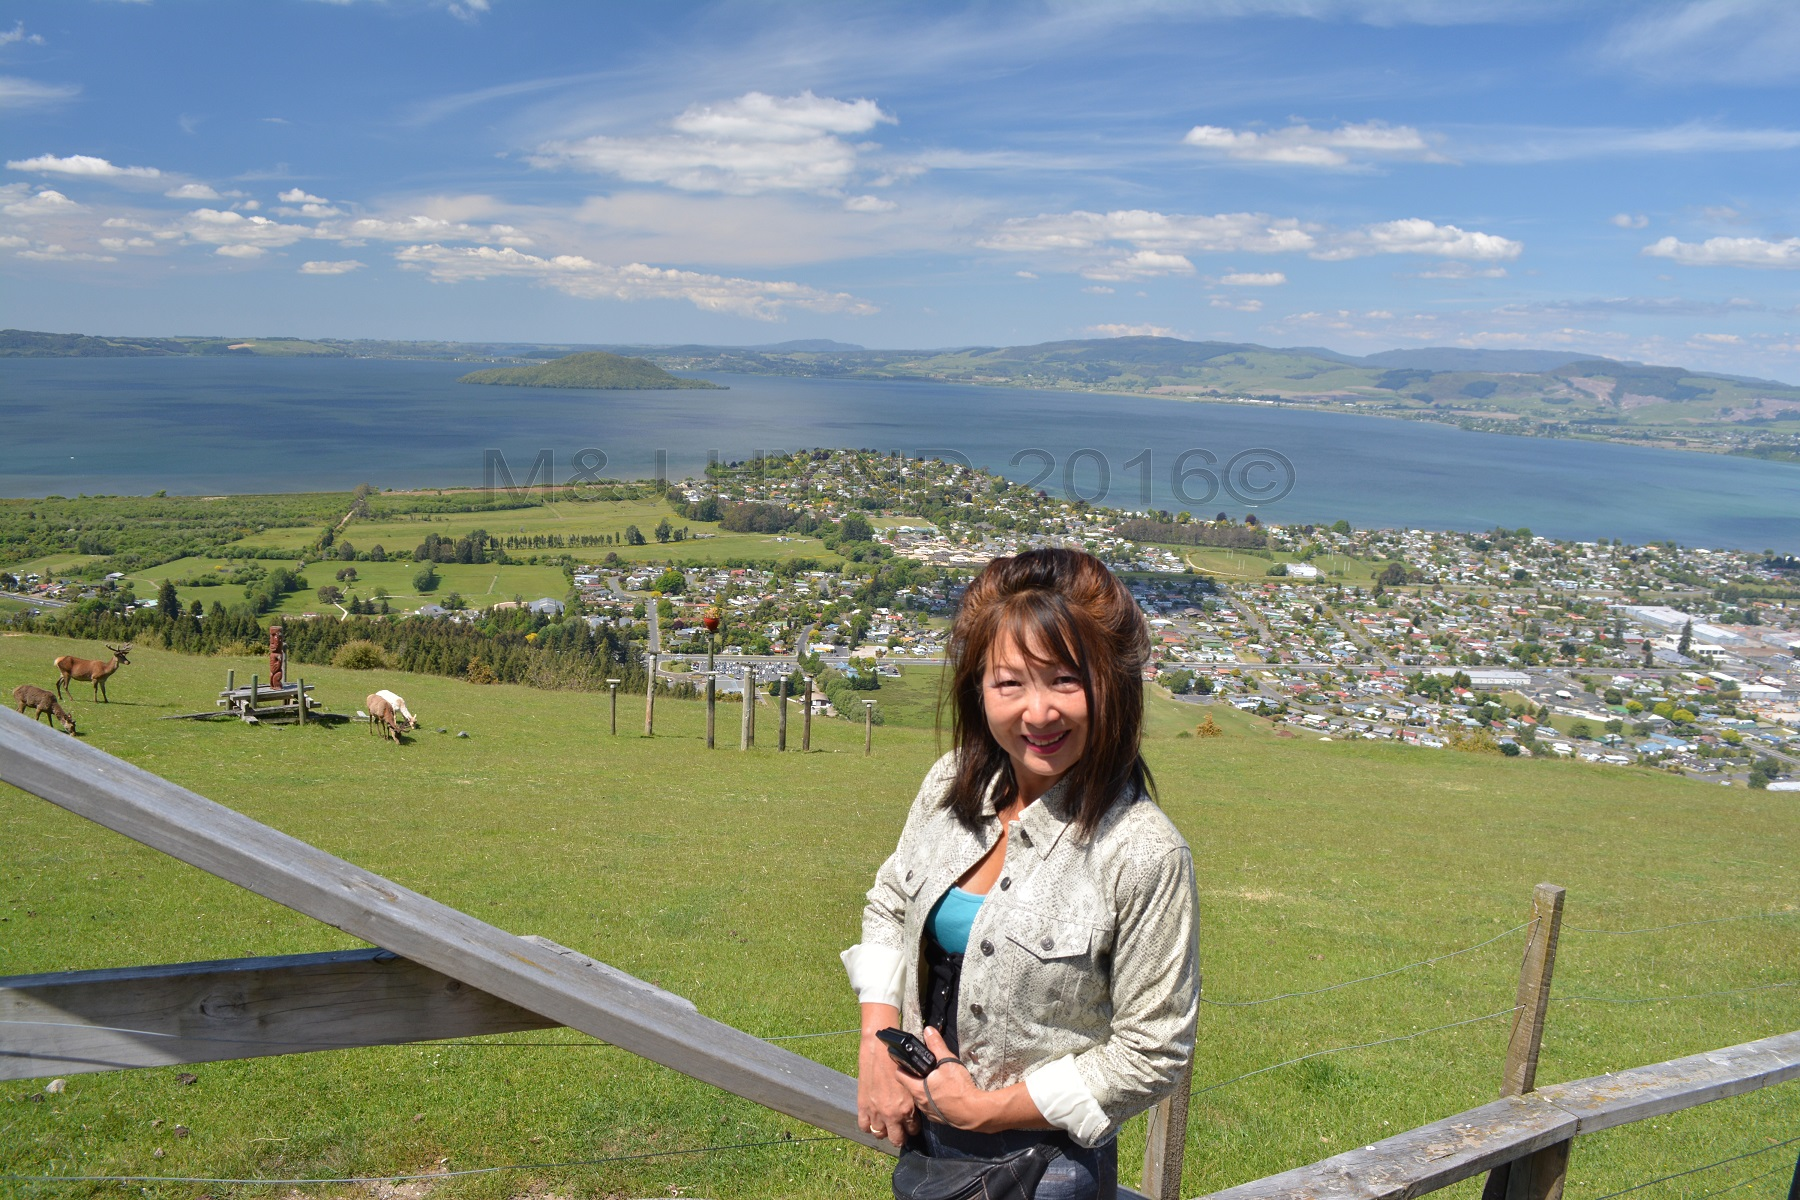 Ngongataha Hill, deer, Rotorua in the background, NZ